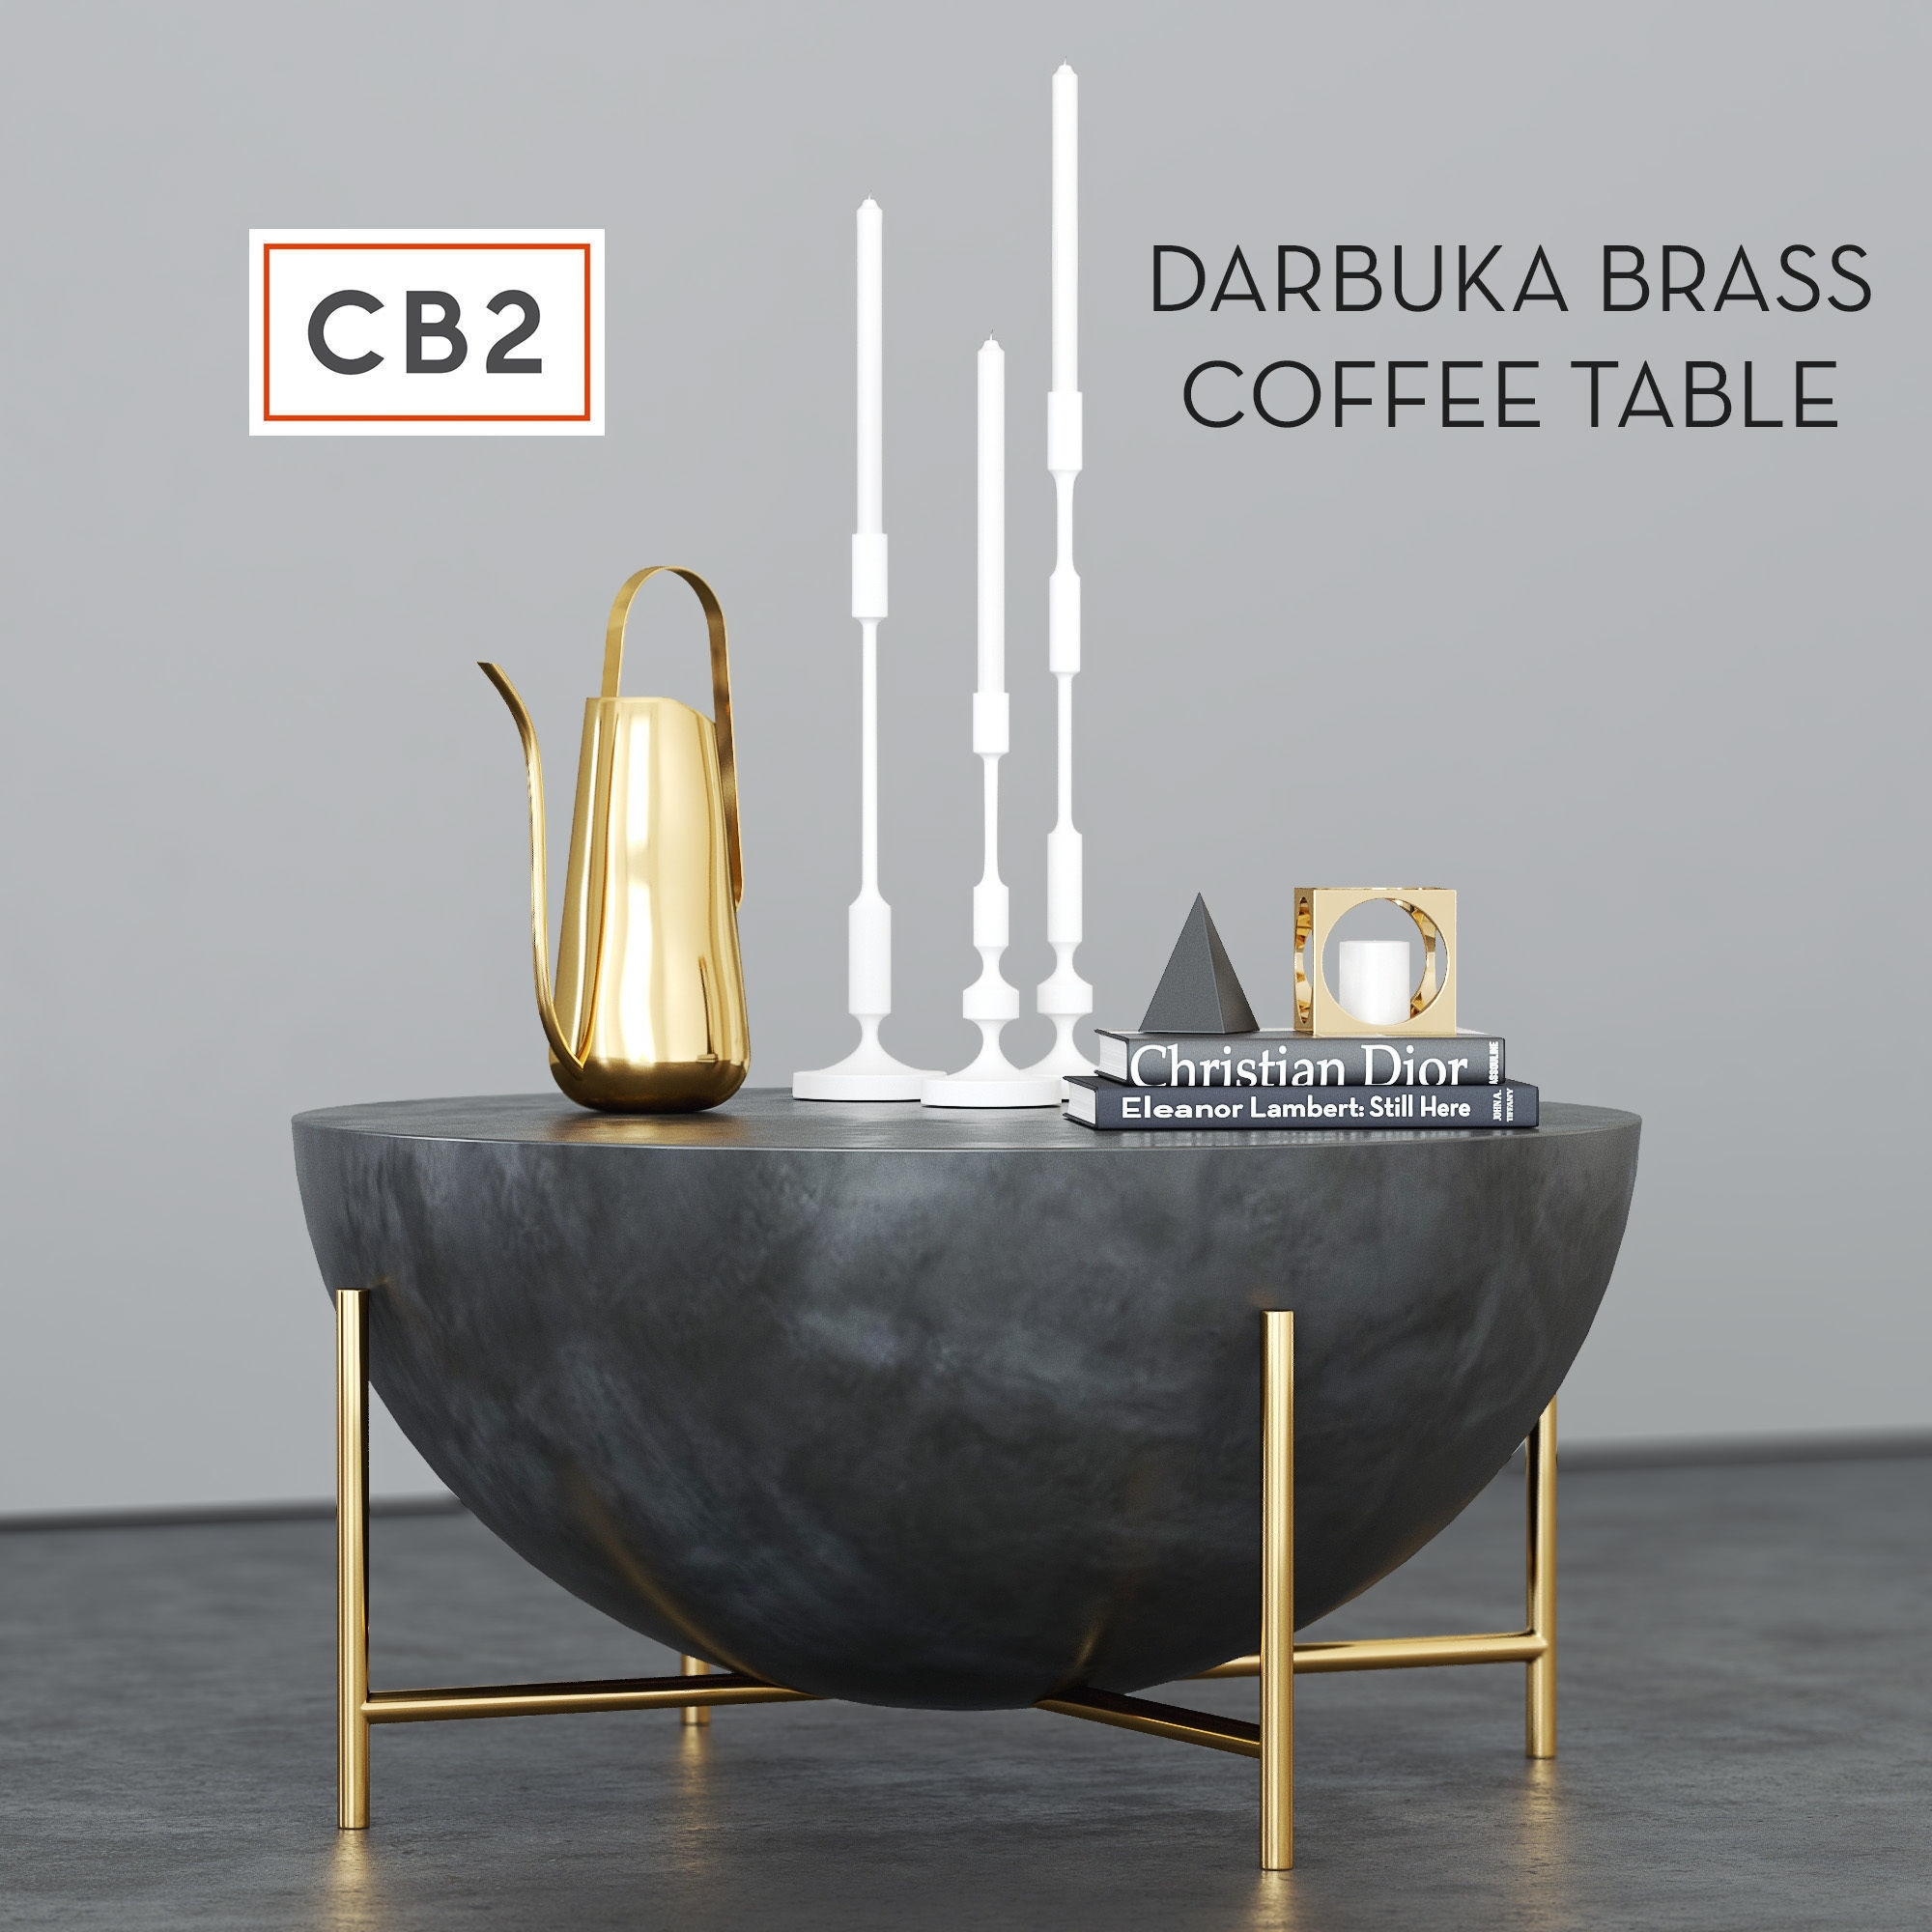 Cb2 Darbuka Brass Coffee Table 3D | Cgtrader pertaining to Darbuka Brass Coffee Tables (Image 13 of 30)